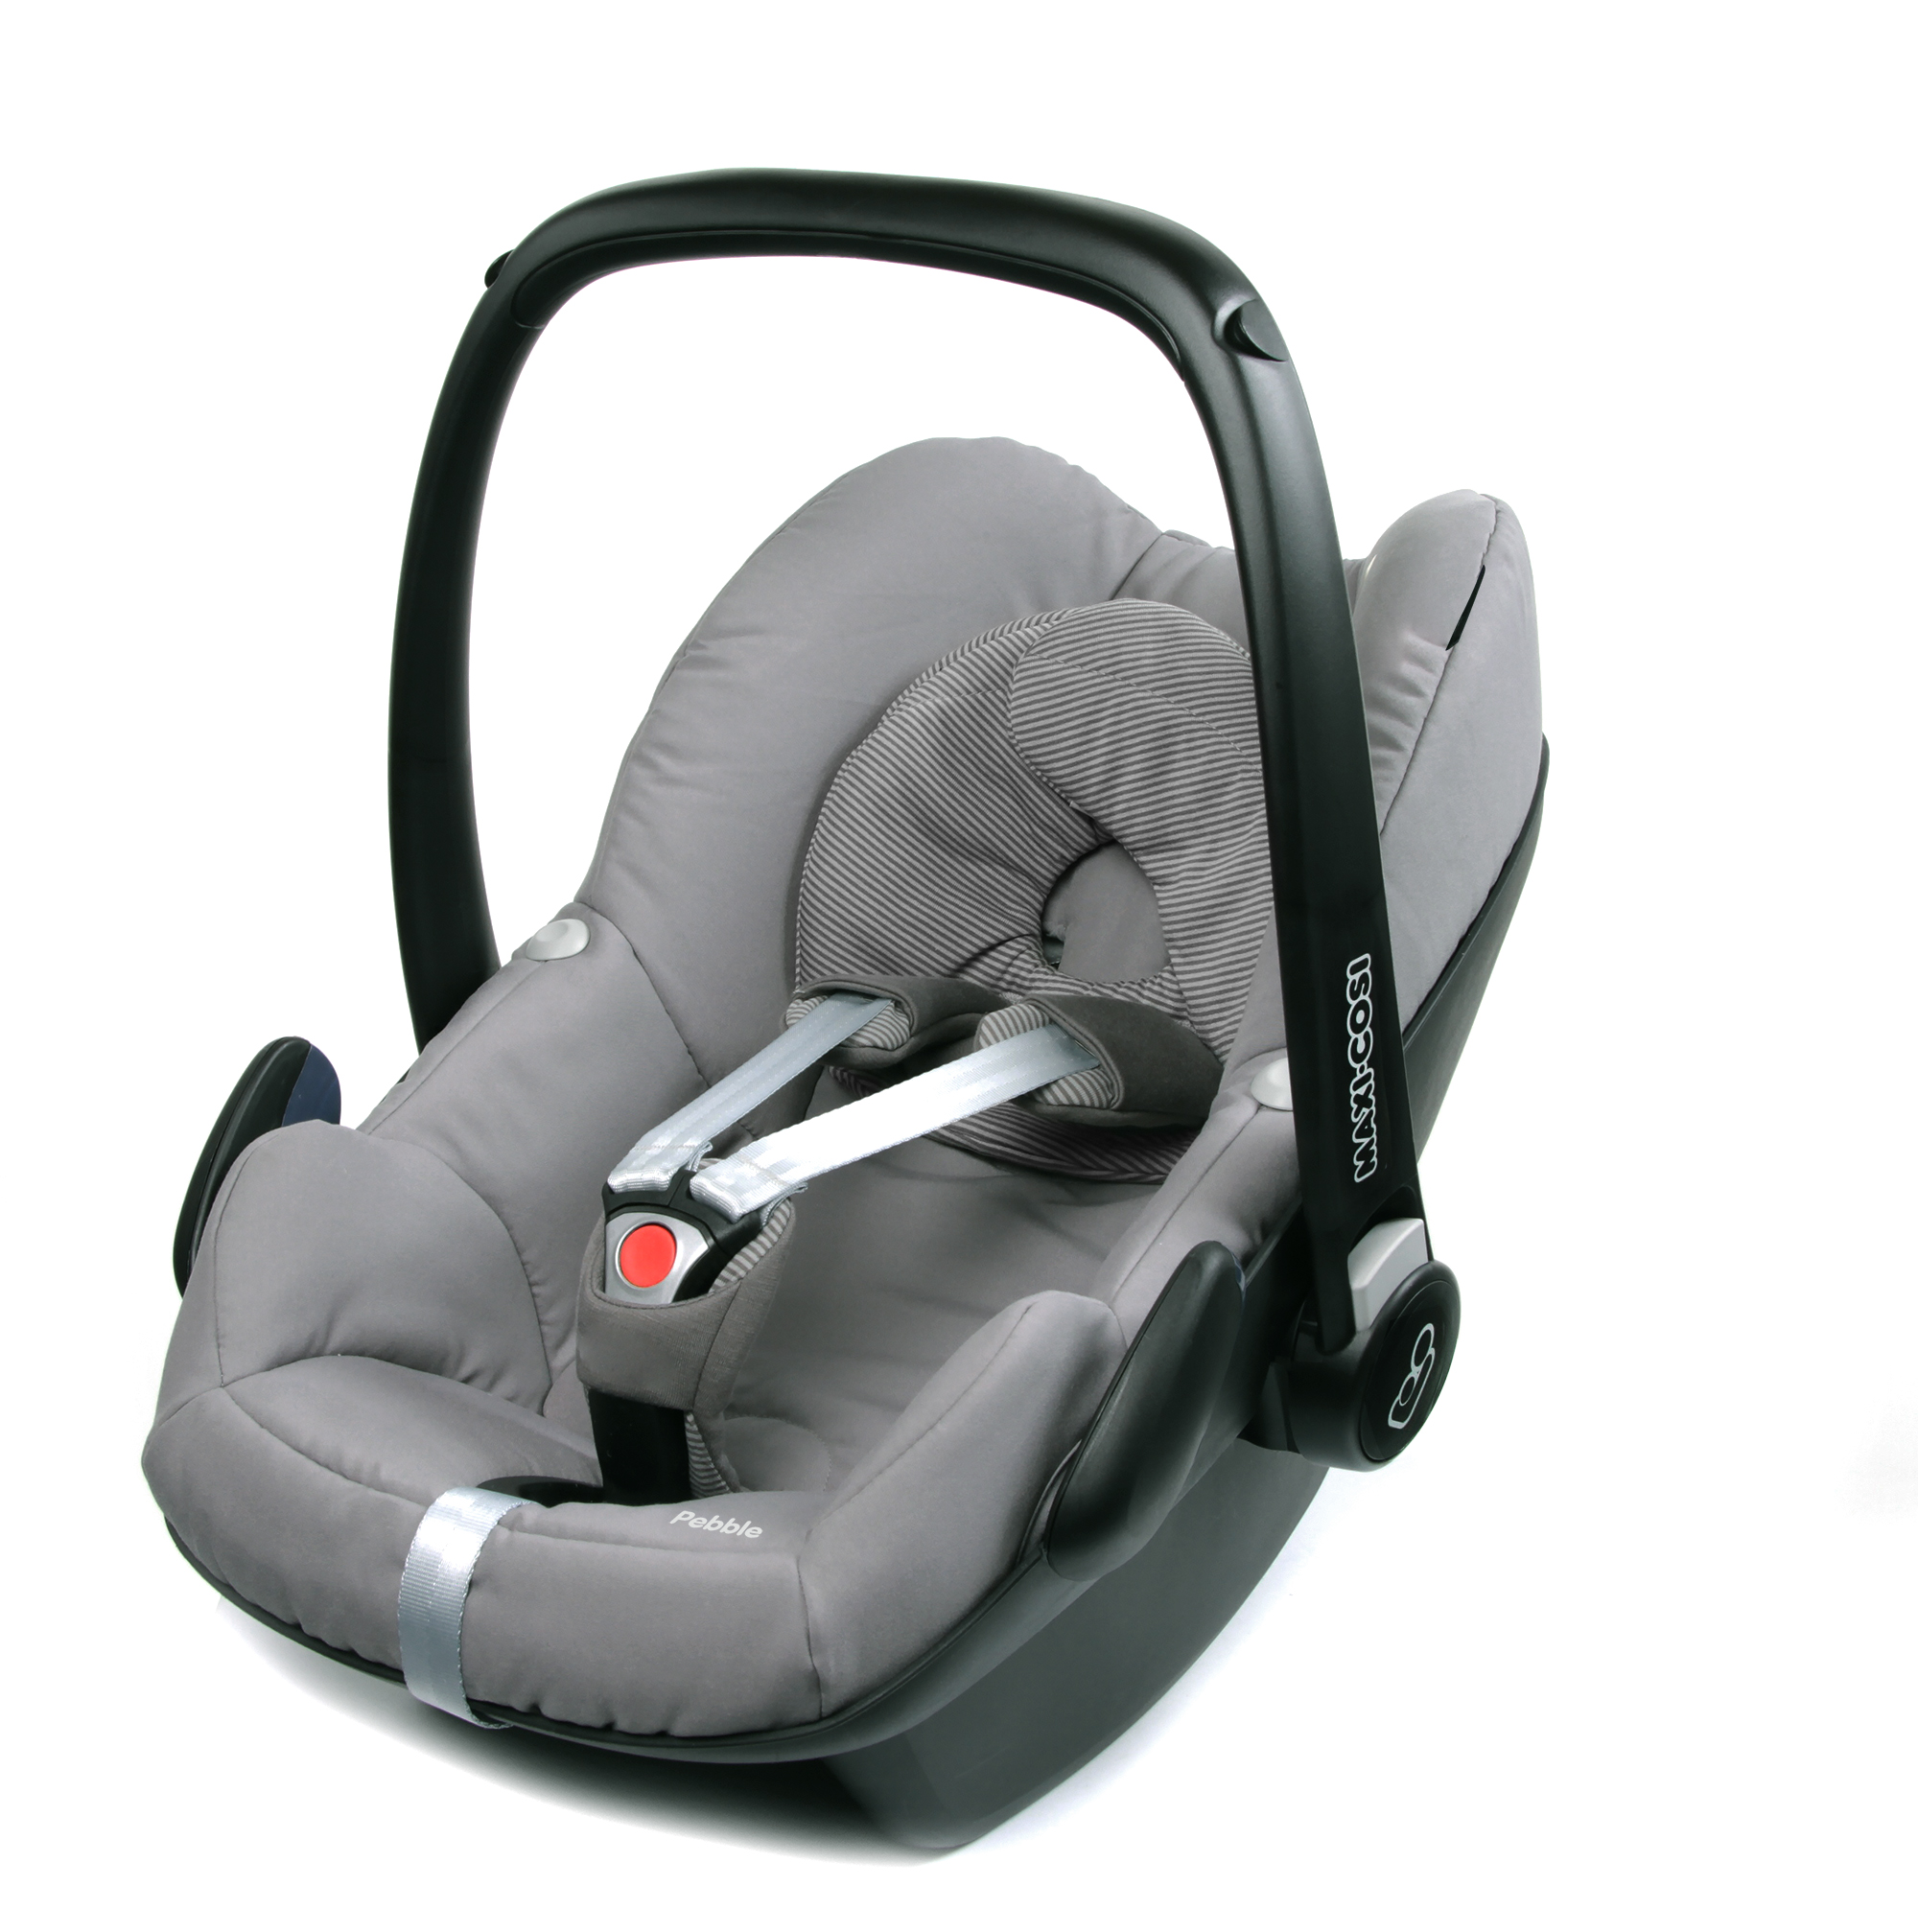 maxi cosi infant car seat pebble 2017 concrete grey buy at kidsroom car seats. Black Bedroom Furniture Sets. Home Design Ideas